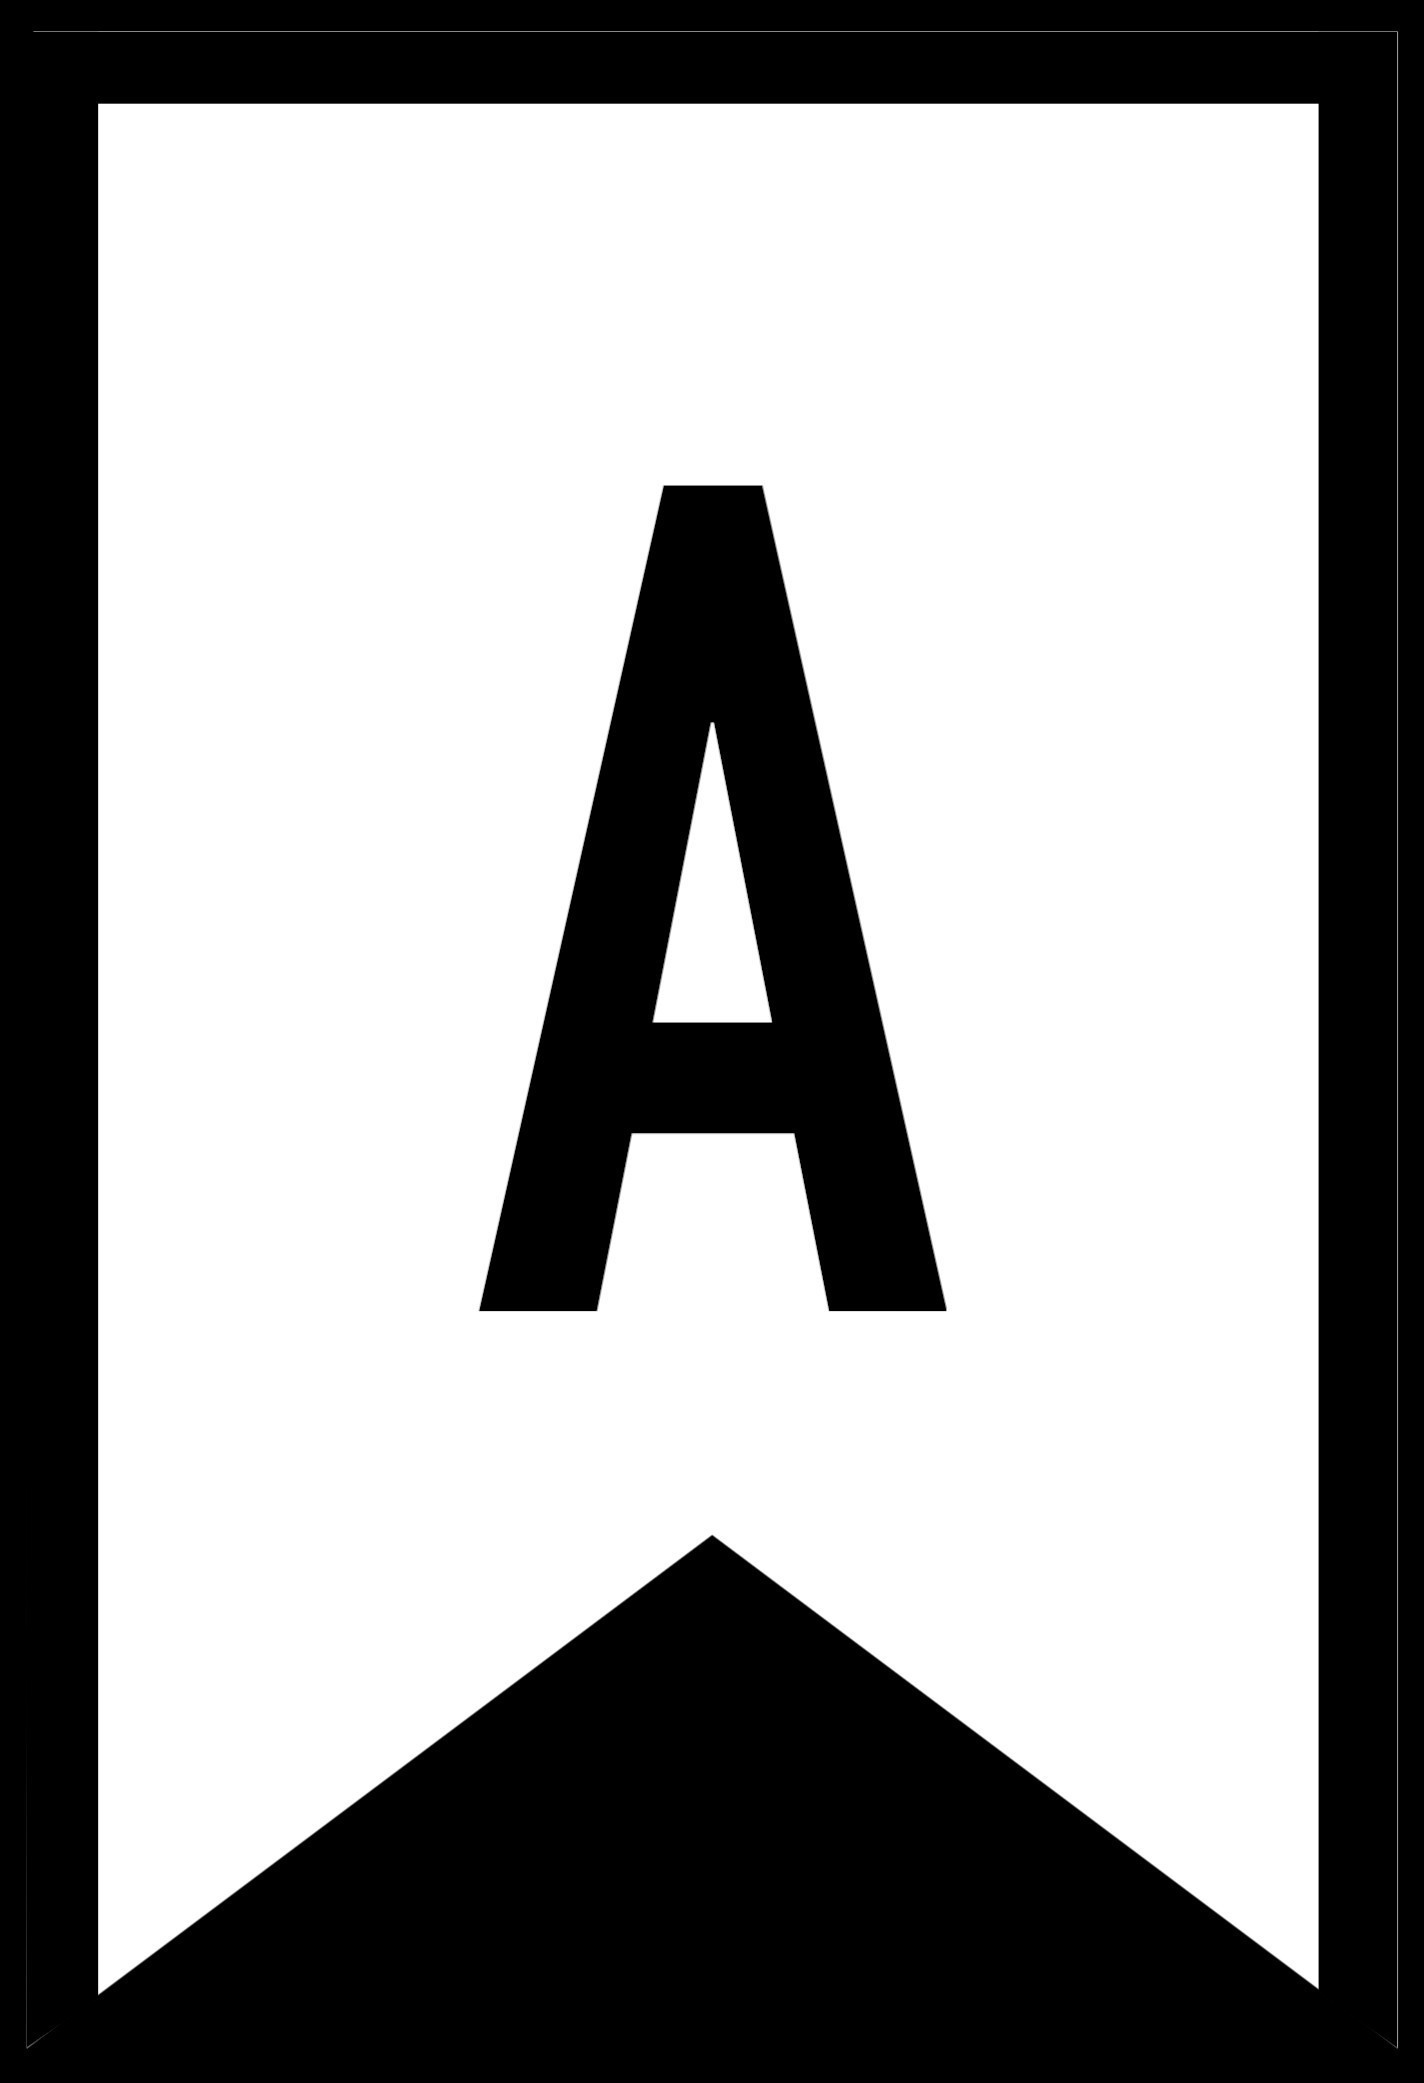 Best Of Free Printable Letters For Banners Entire Alphabet | Www - Free Printable Alphabet Letters For Banners